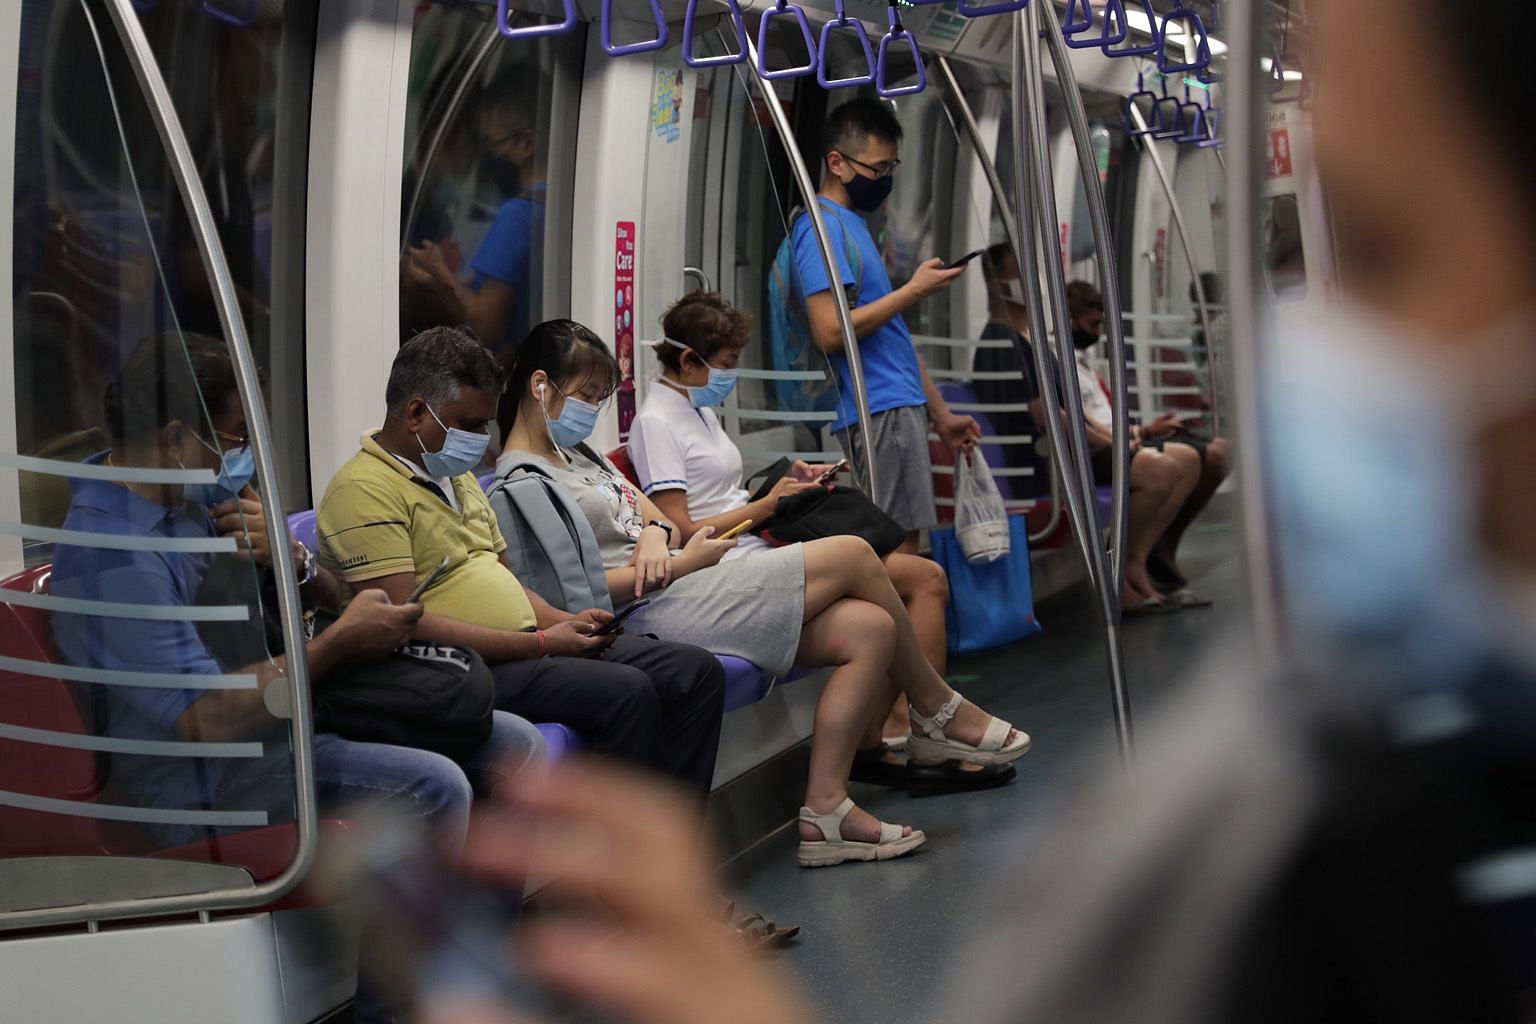 The study by the Singapore Management University involved 1,900 subscribers of various info-communications services between February and April. ST PHOTO: GIN TAY